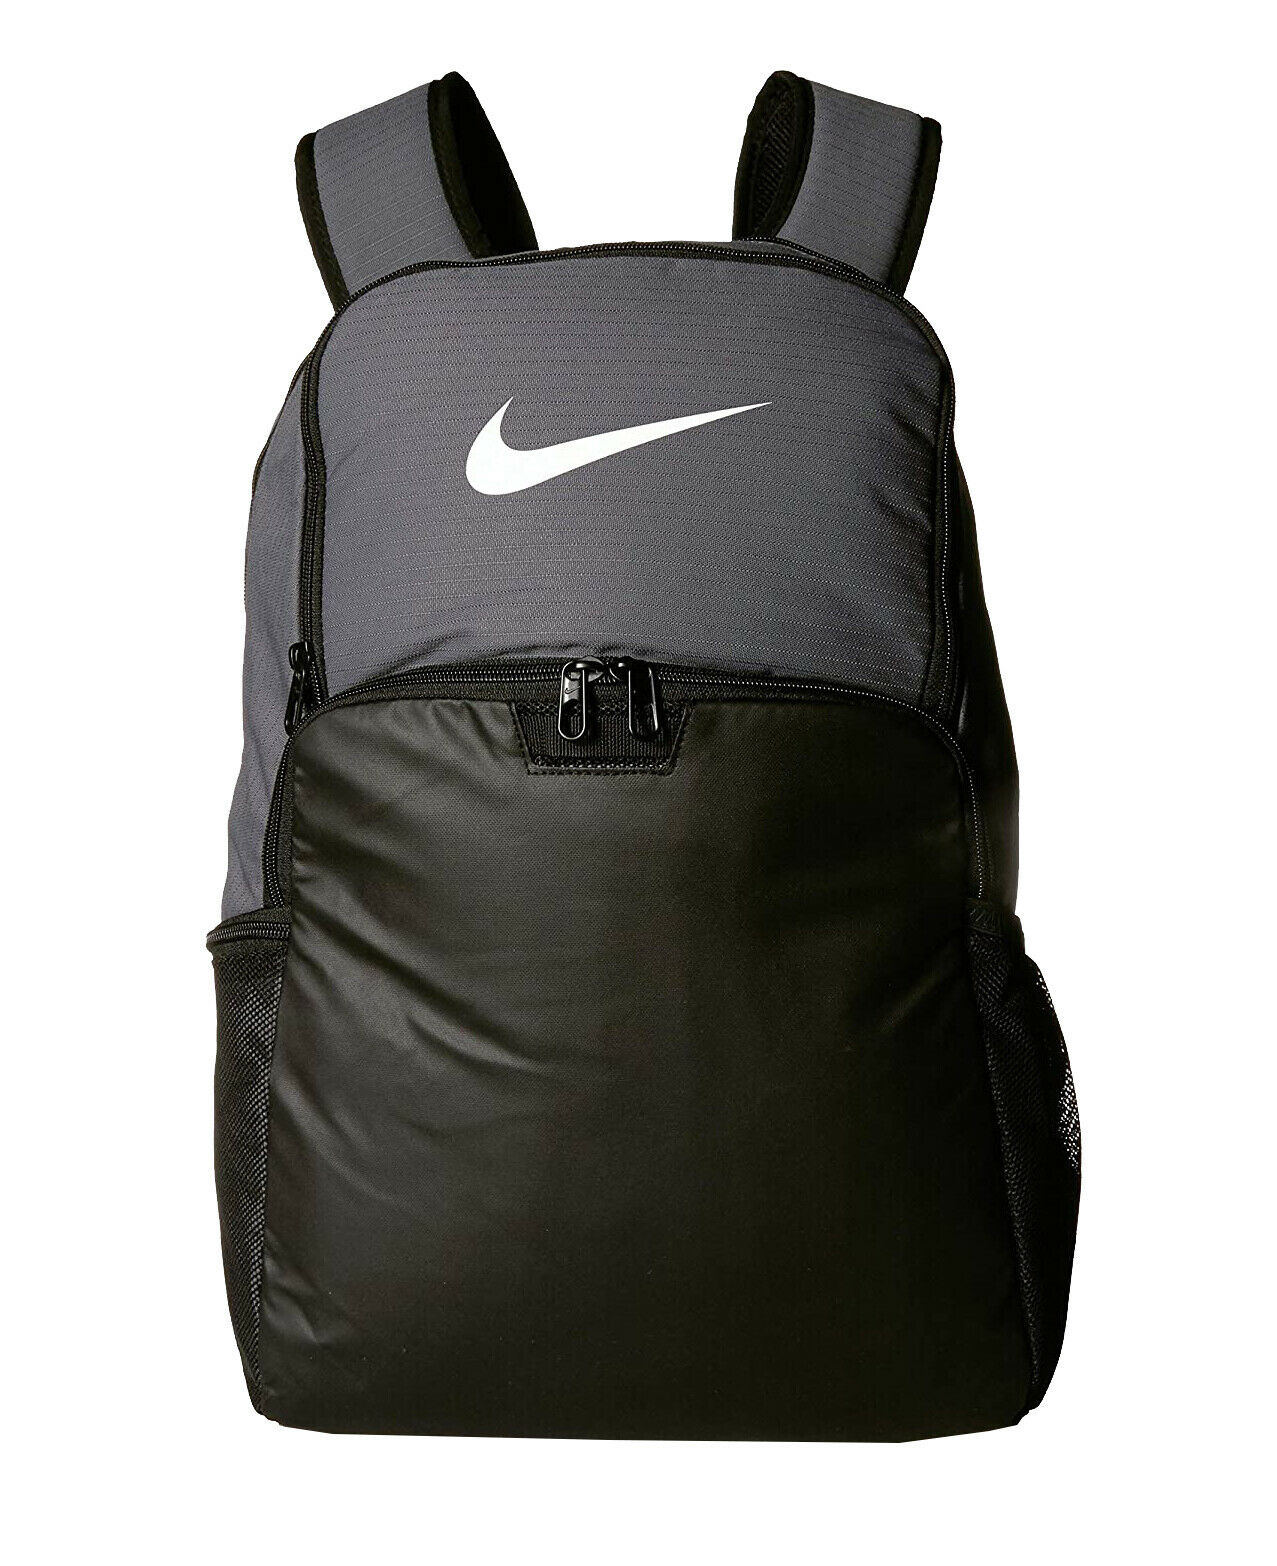 Nike Brasilia 7 Backpack Mesh Large Backpack Midnight Turquoise Black White One For Sale Online Ebay